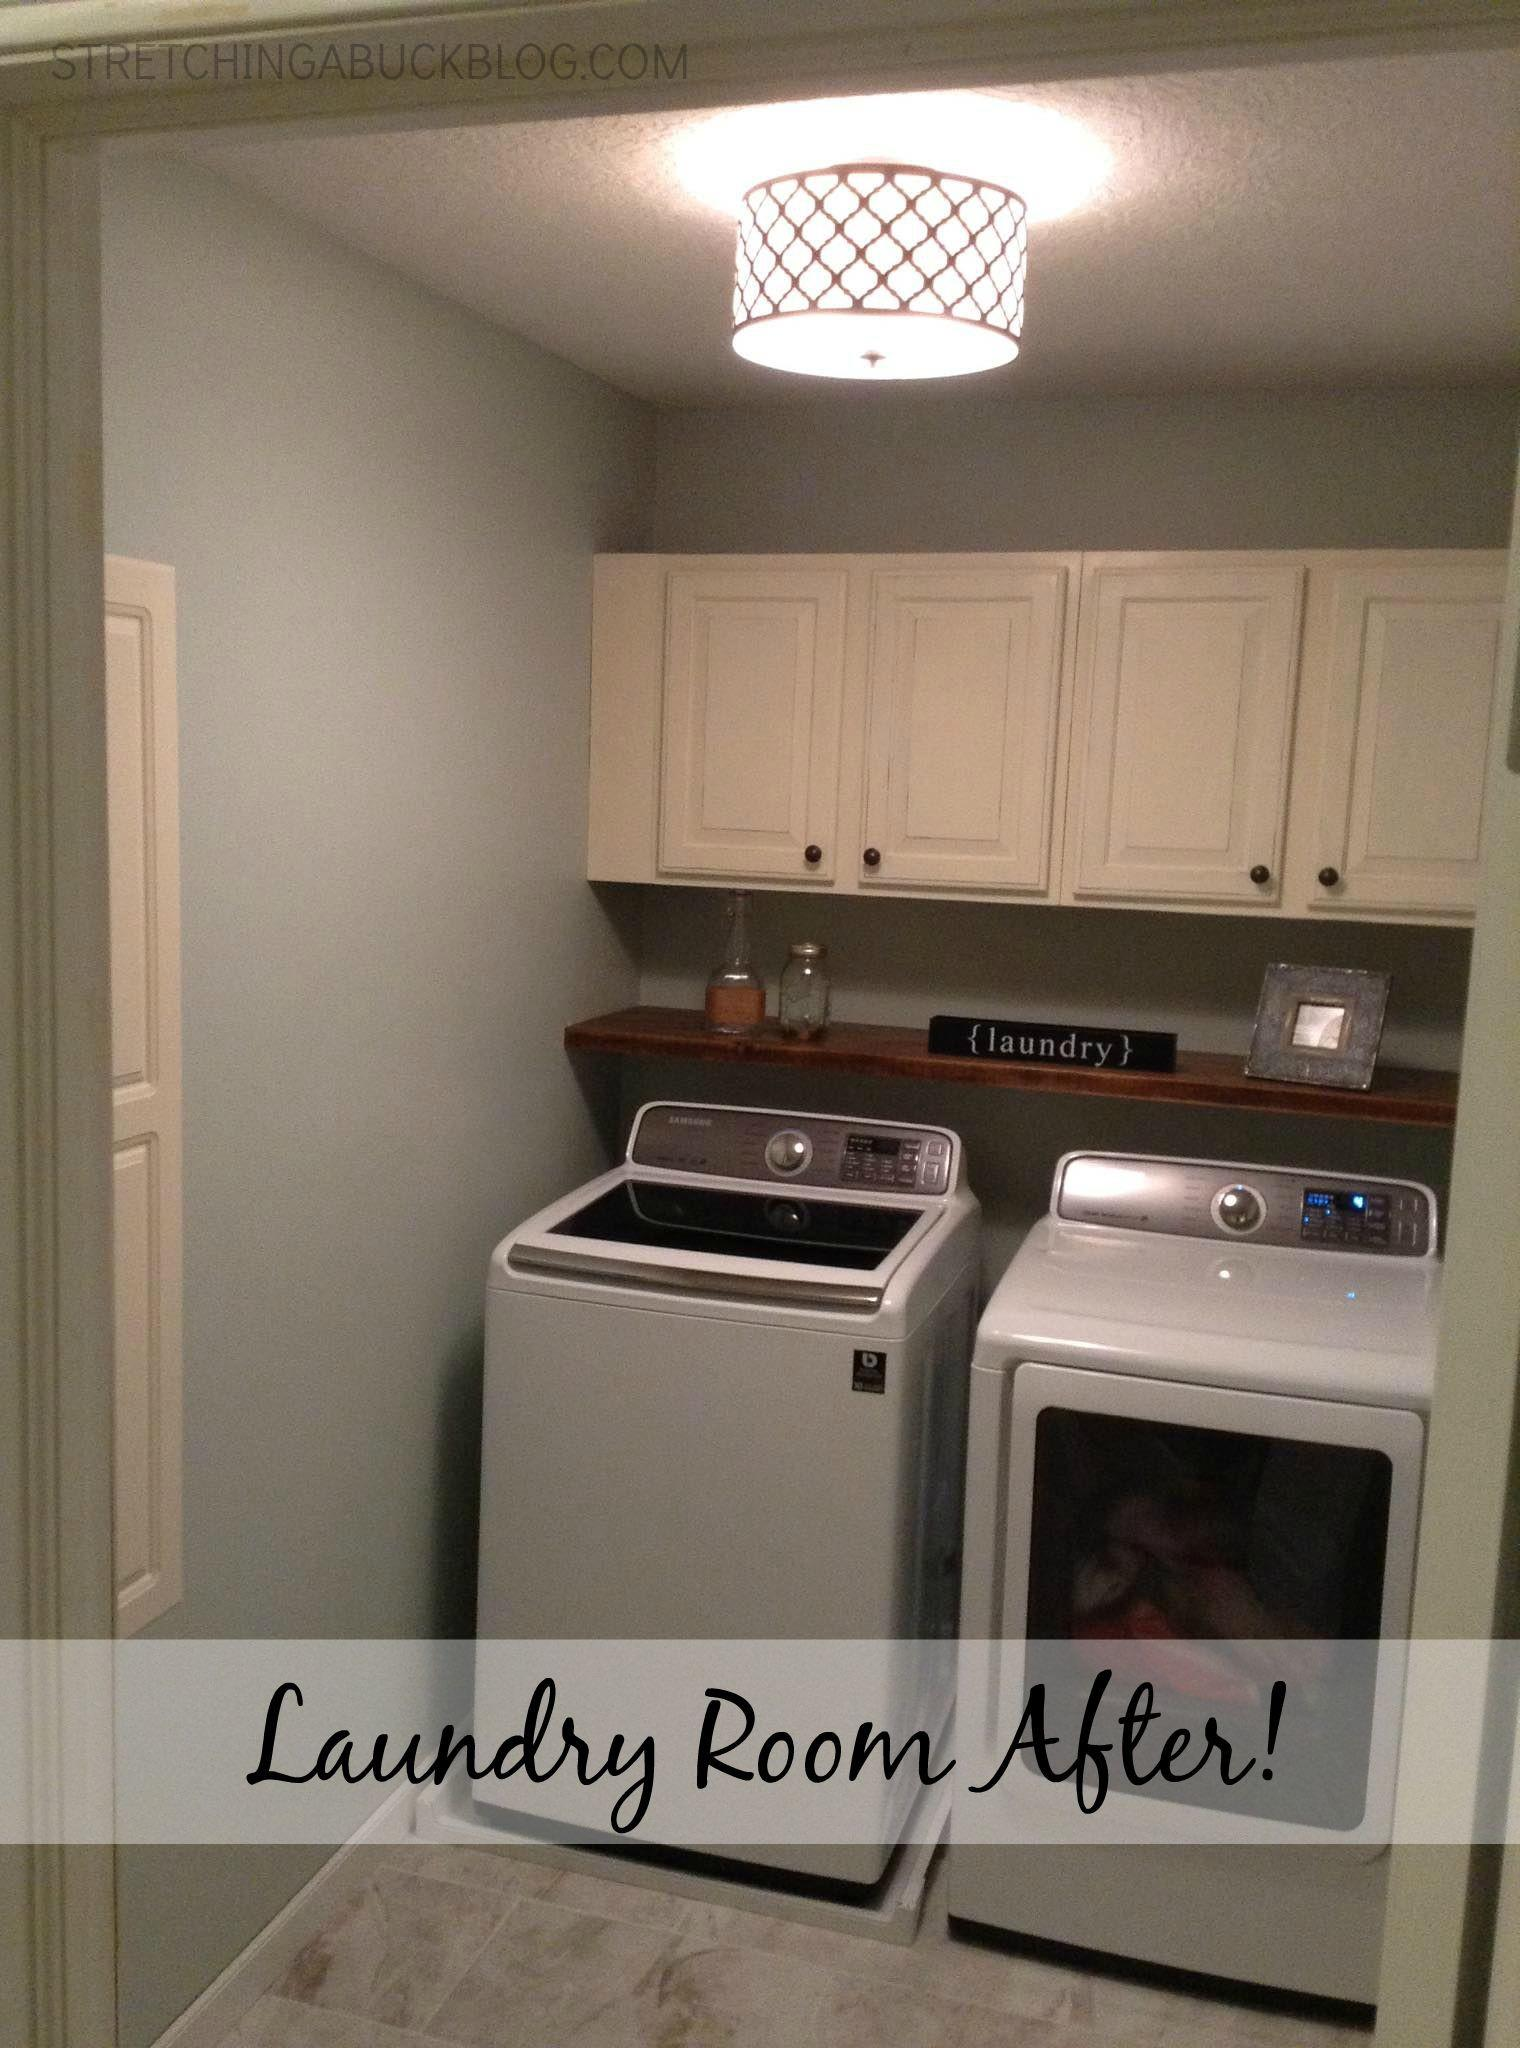 Diy Laundry Room Makeover Stretching Buck